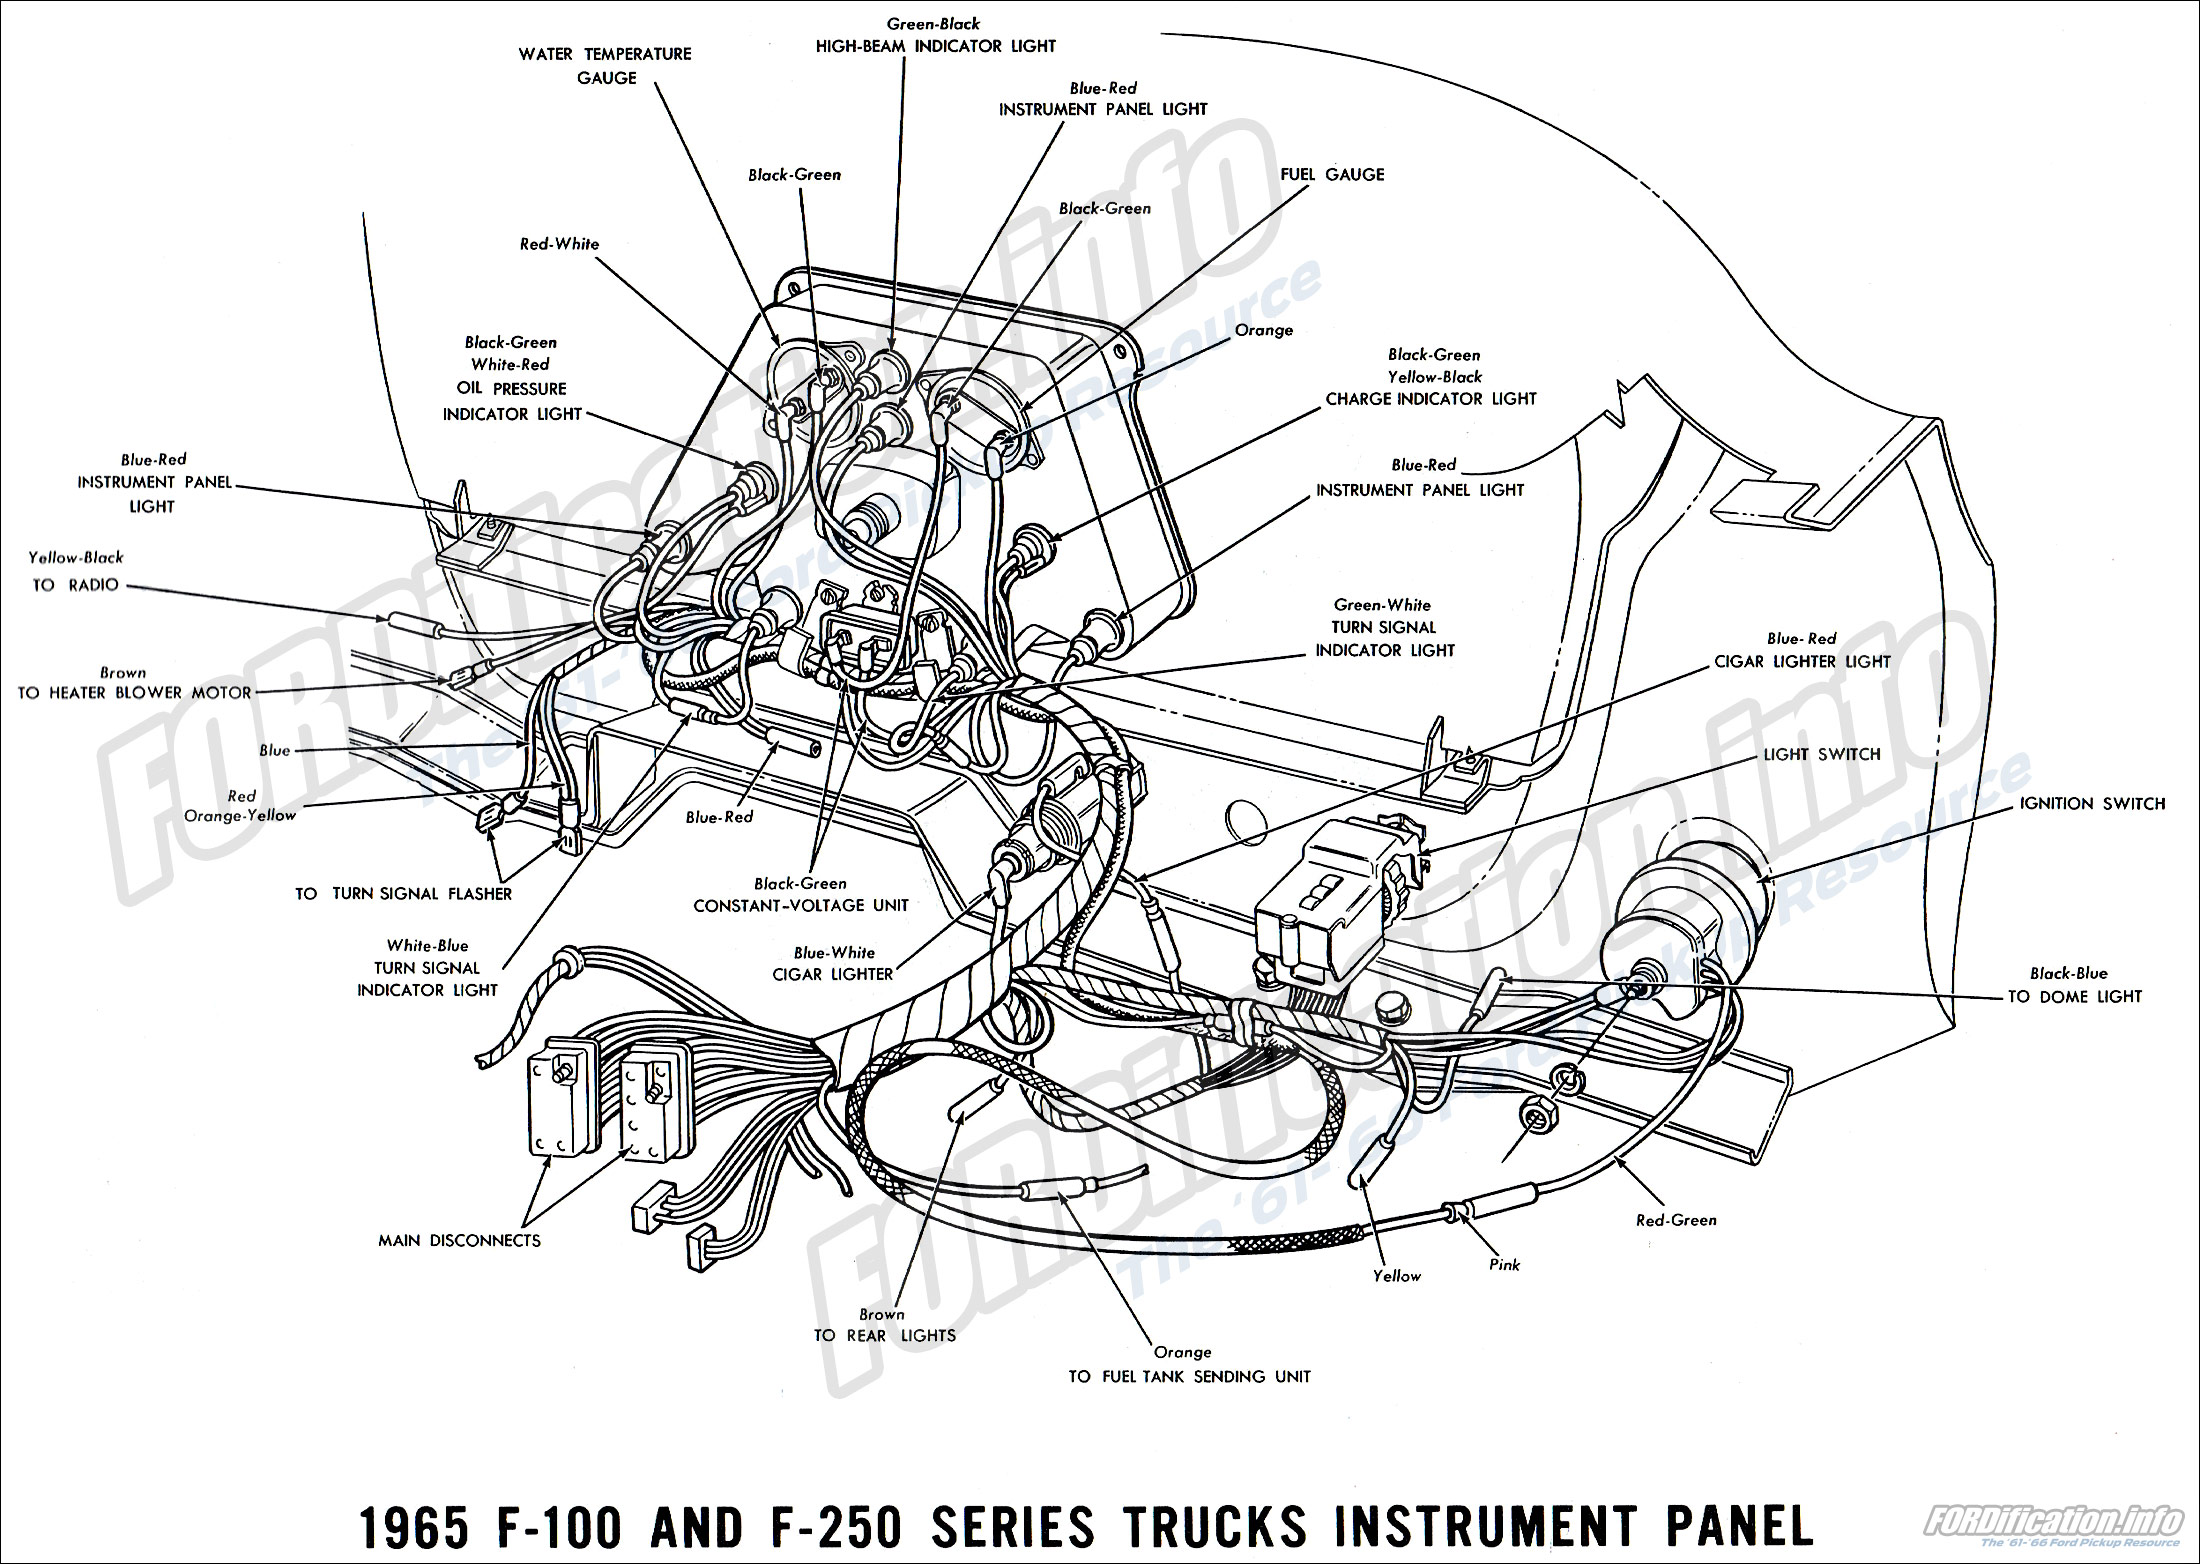 1965 ford truck wiring diagrams fordification info the '61 '66 63 ford f100  wiring